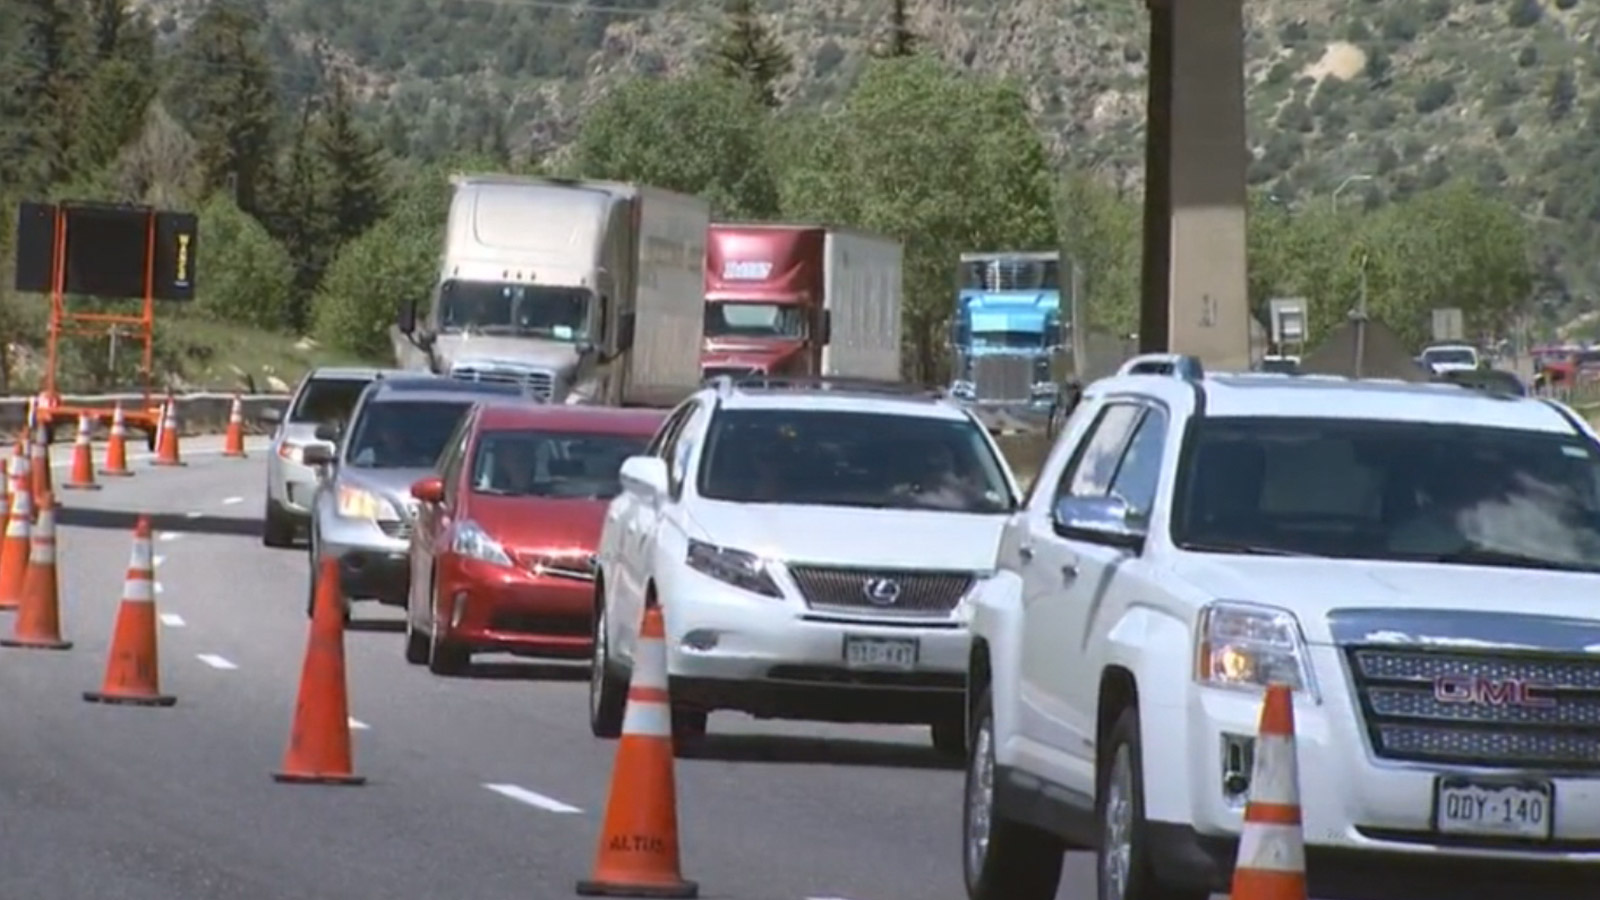 I-70 construction at Idaho Springs (credit: CBS)